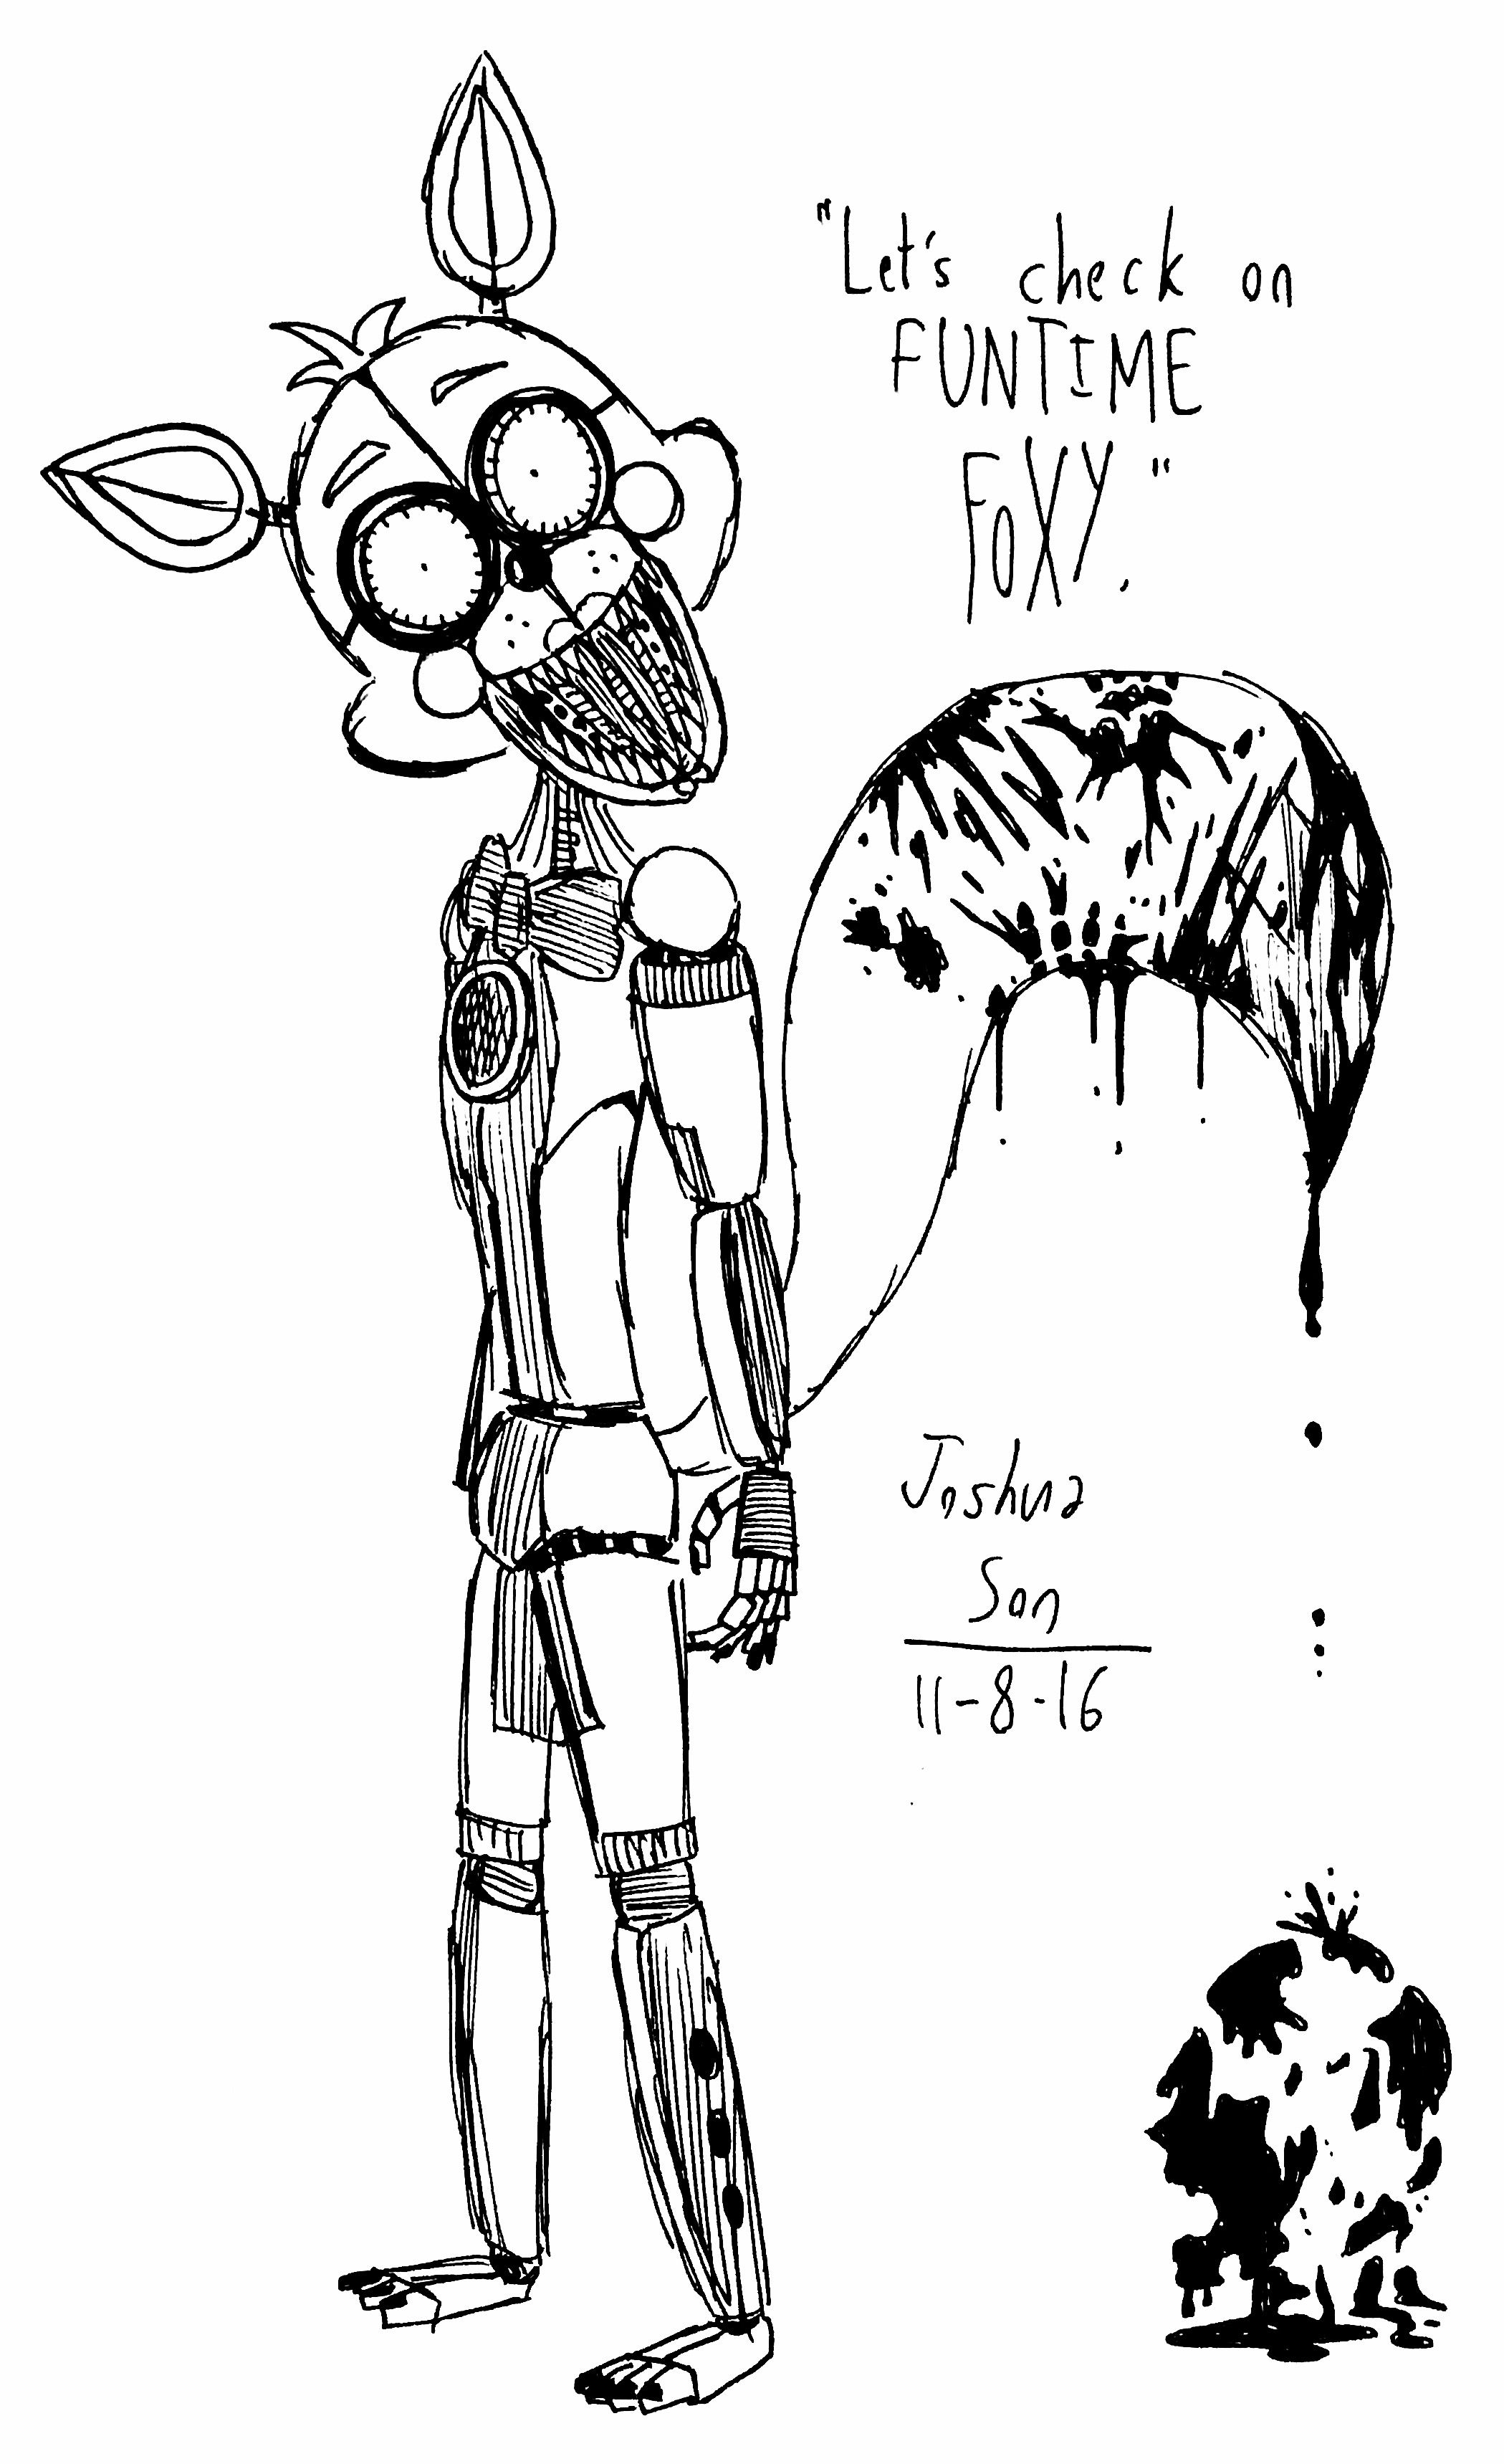 Sister Location Funtime Foxy By Josh S26 On Deviantart Sister Location Funtime Foxy Fnaf Coloring Pages